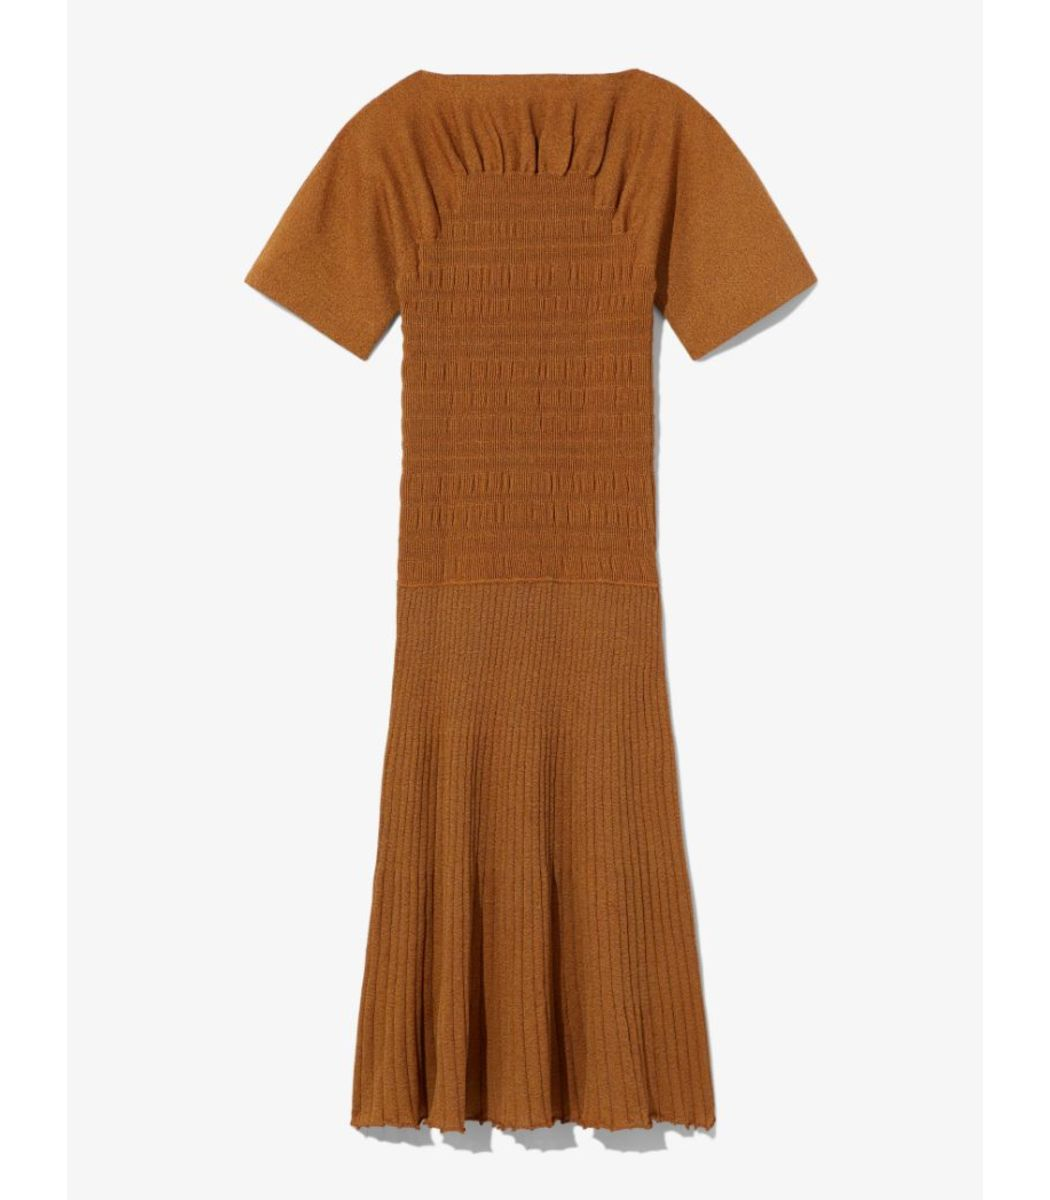 Proenza Schouler Smocked Knit Dress